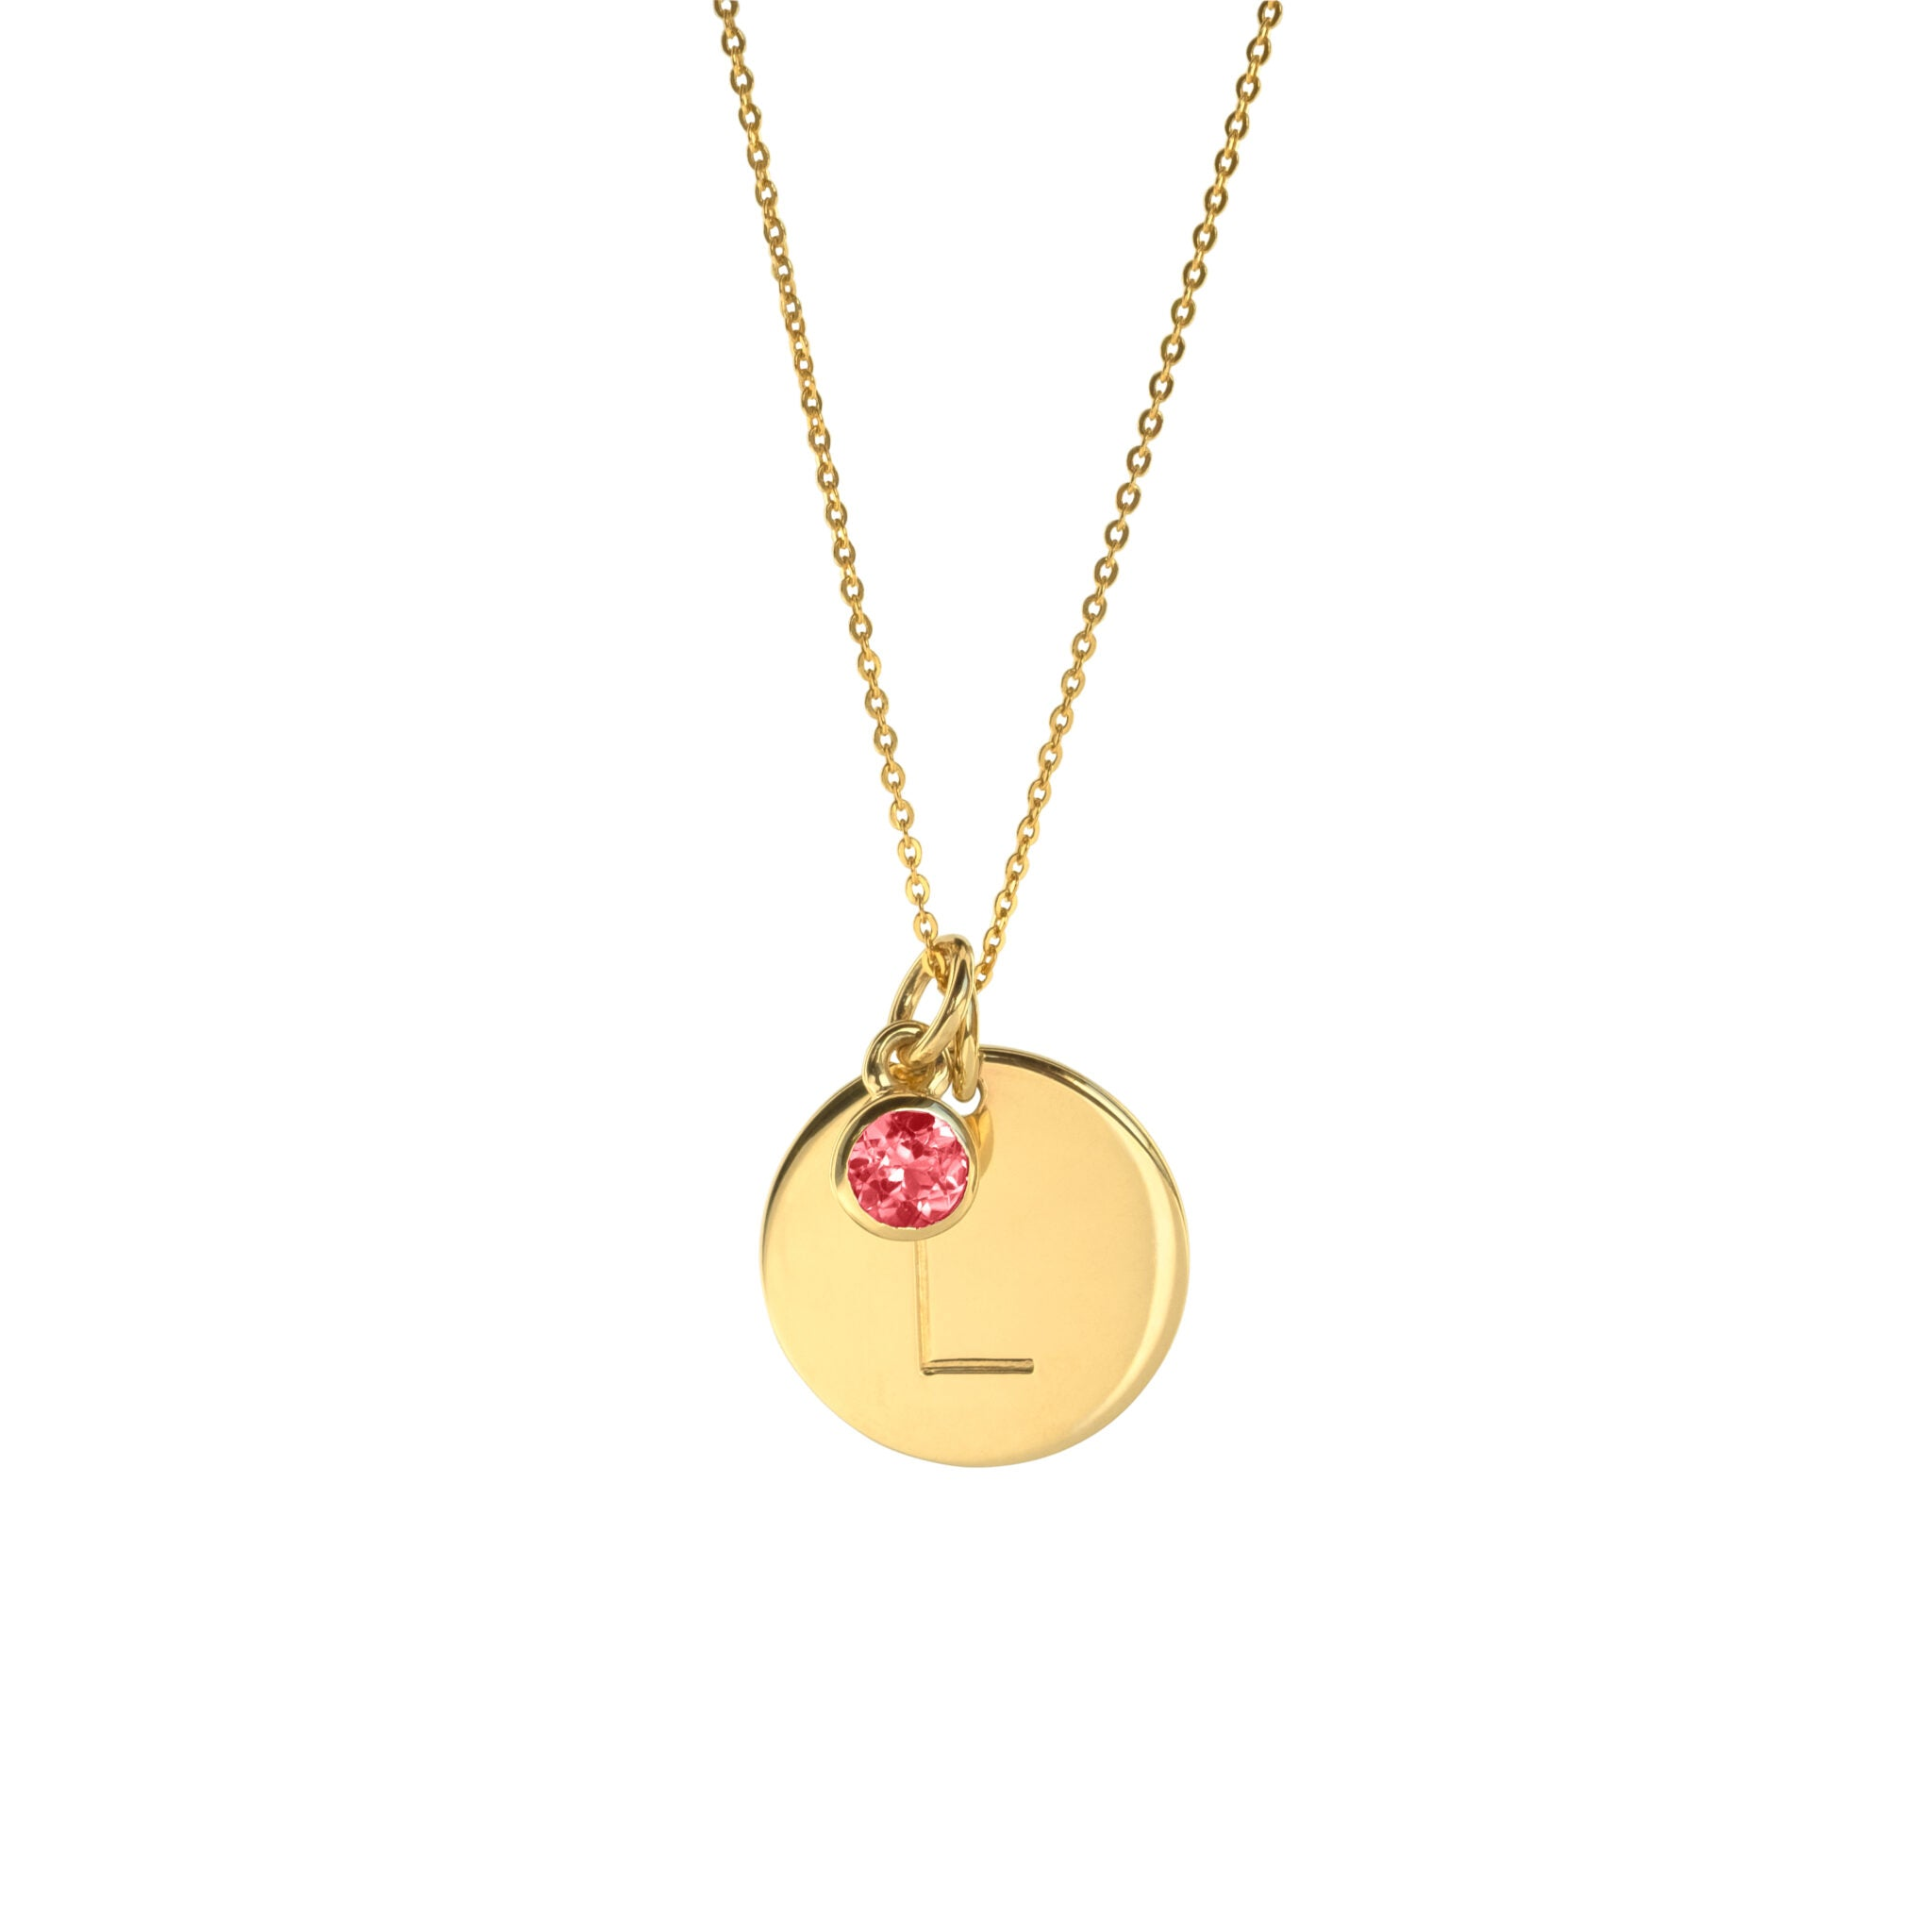 Large Gold Initial Necklace with Birthstone Charm